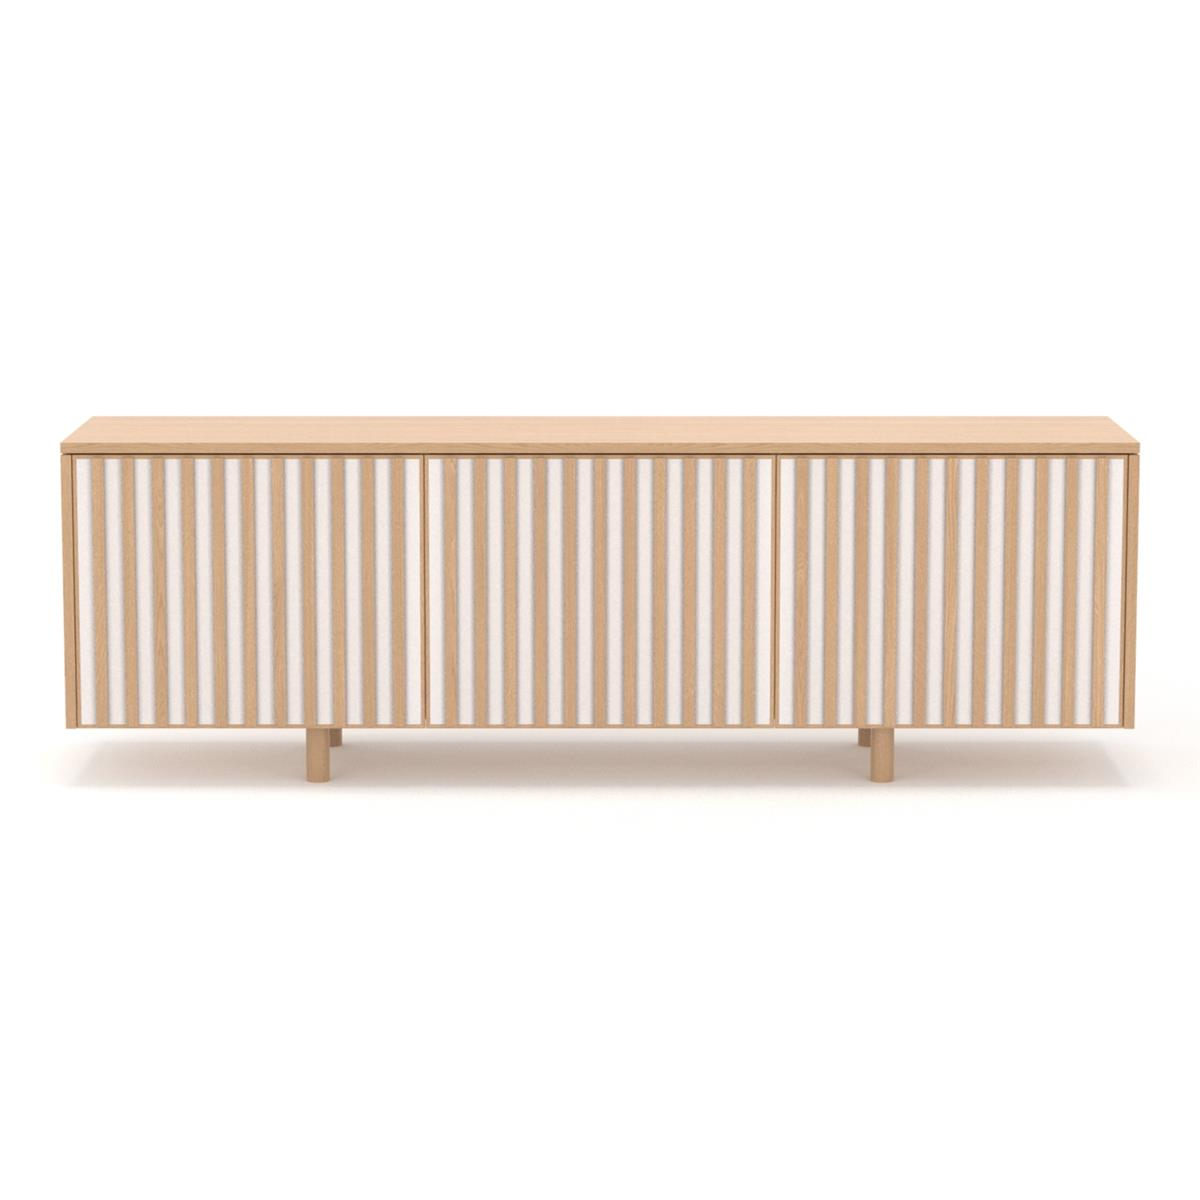 dB Silent Sideboard - White Oiled Oak & Oak legs